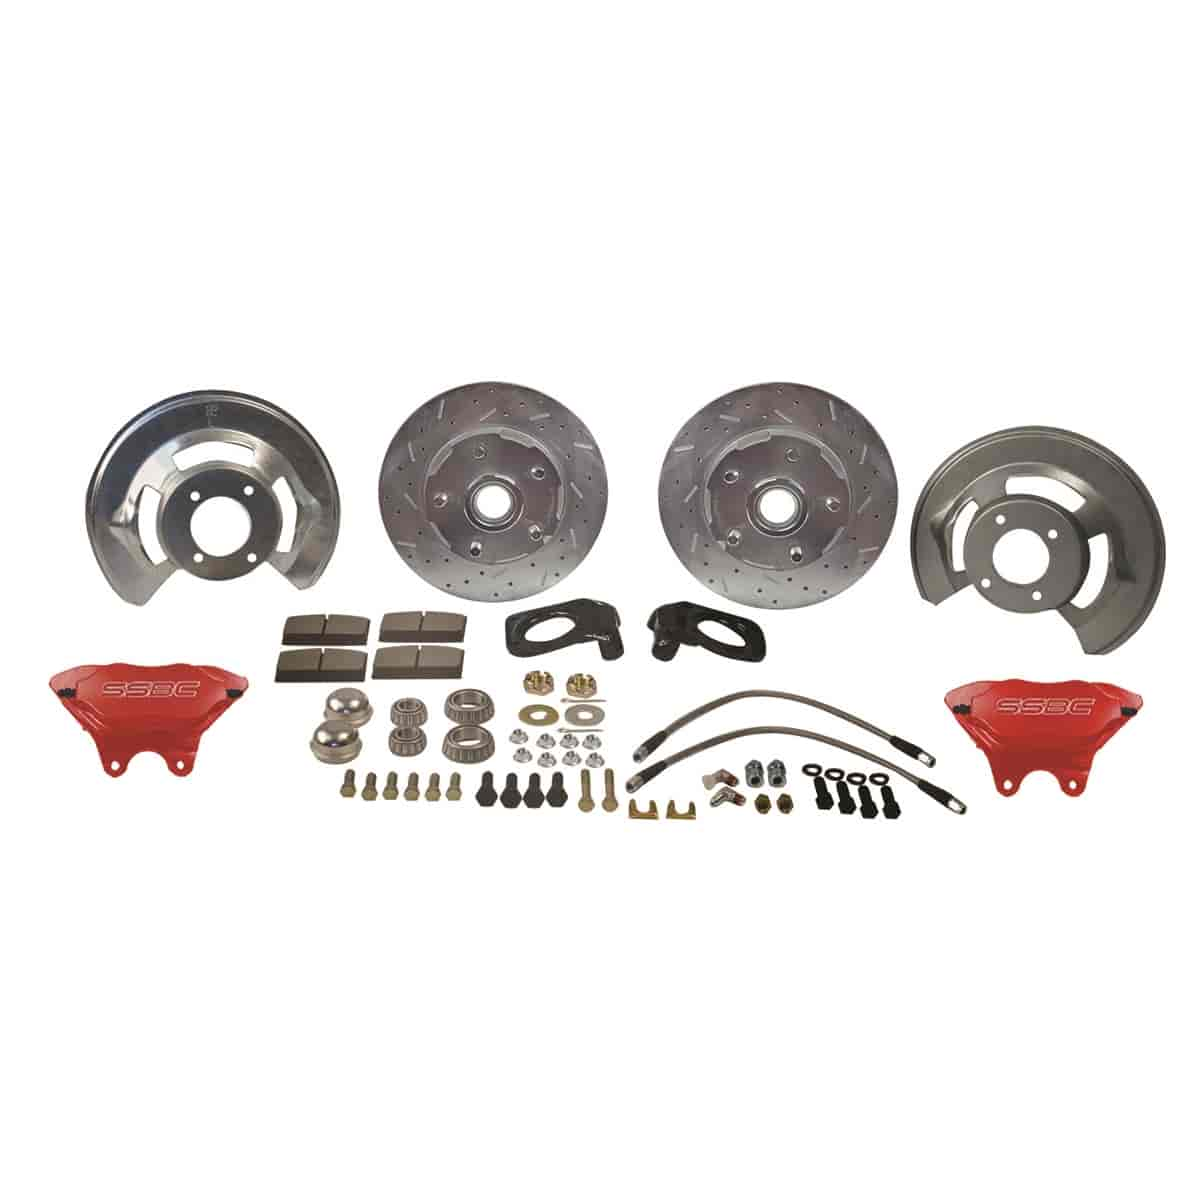 Stainless Steel Brakes W132-4R - Stainless Steel Brakes Competition 4-Piston Front Disc Conversion Kits